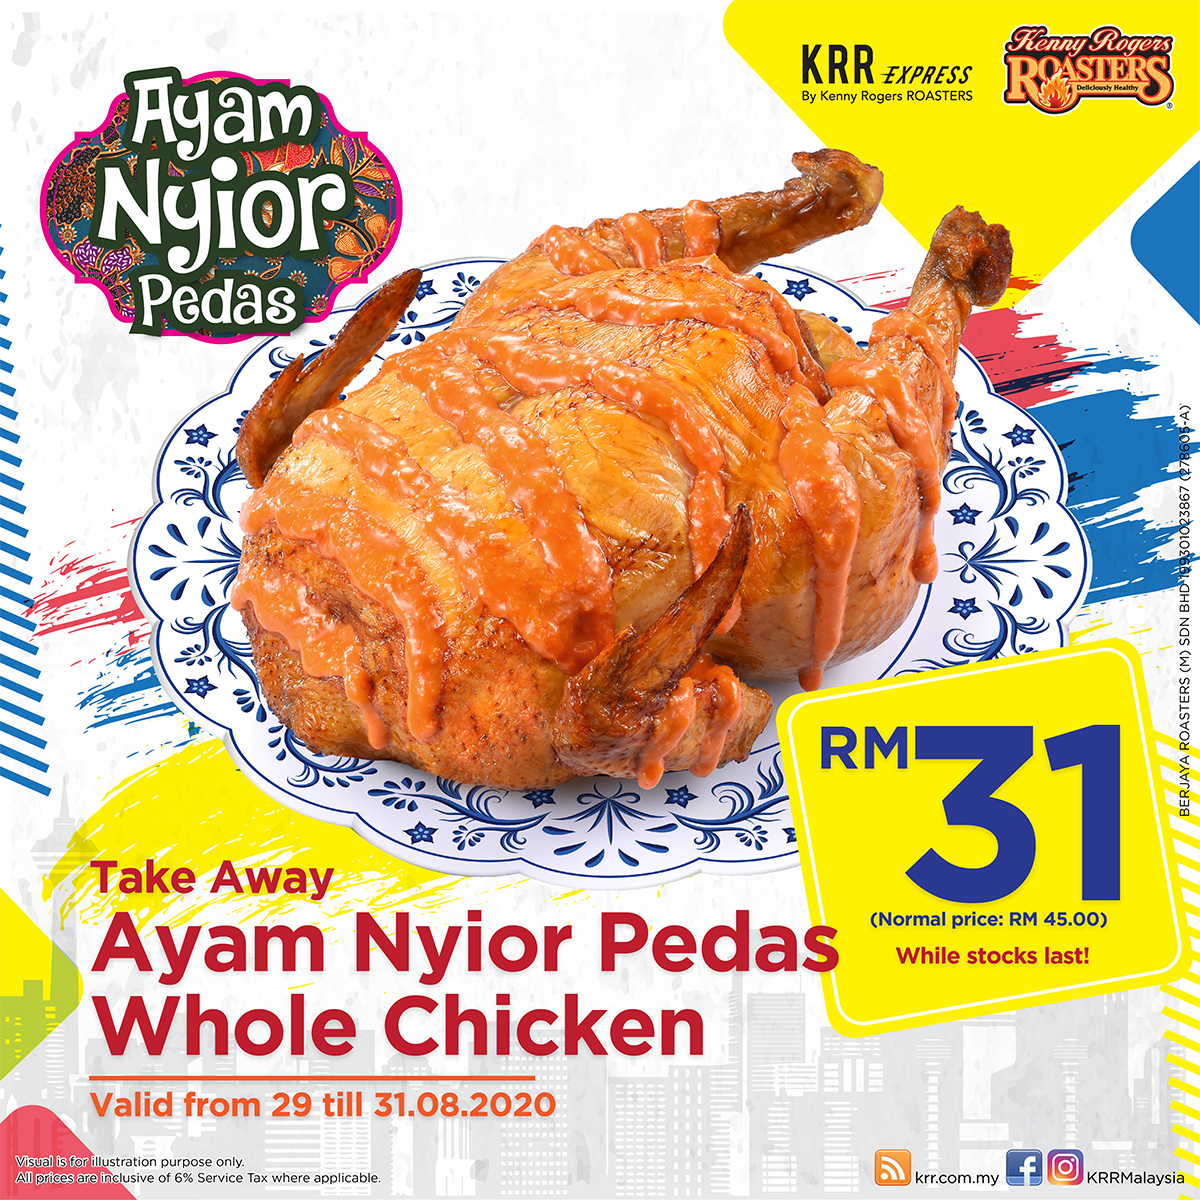 Ayam Nyior Pedas Whole Chicken for only RM31 on 29 -31.8.2020.